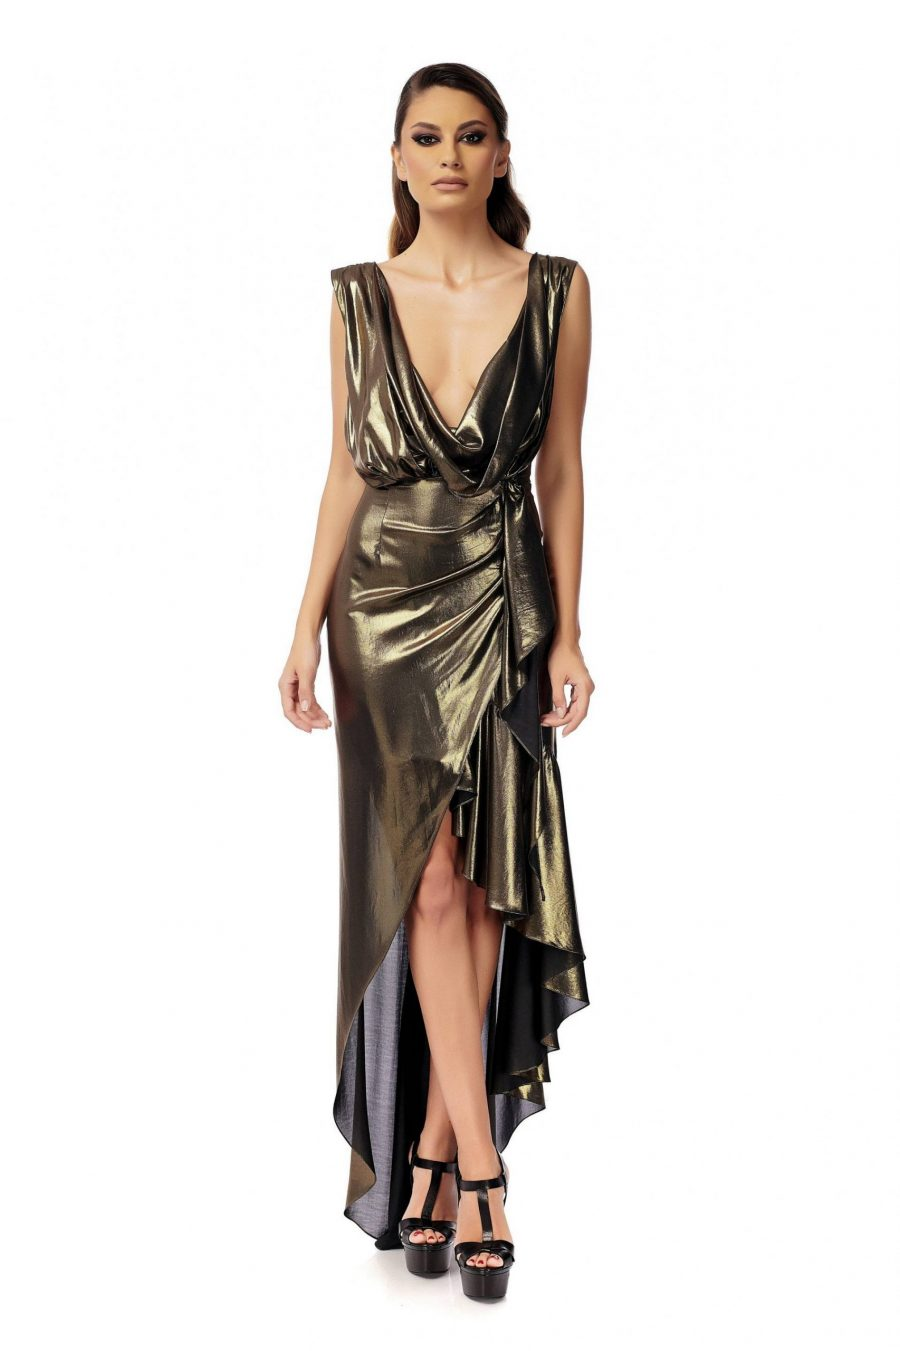 Evening silk dress